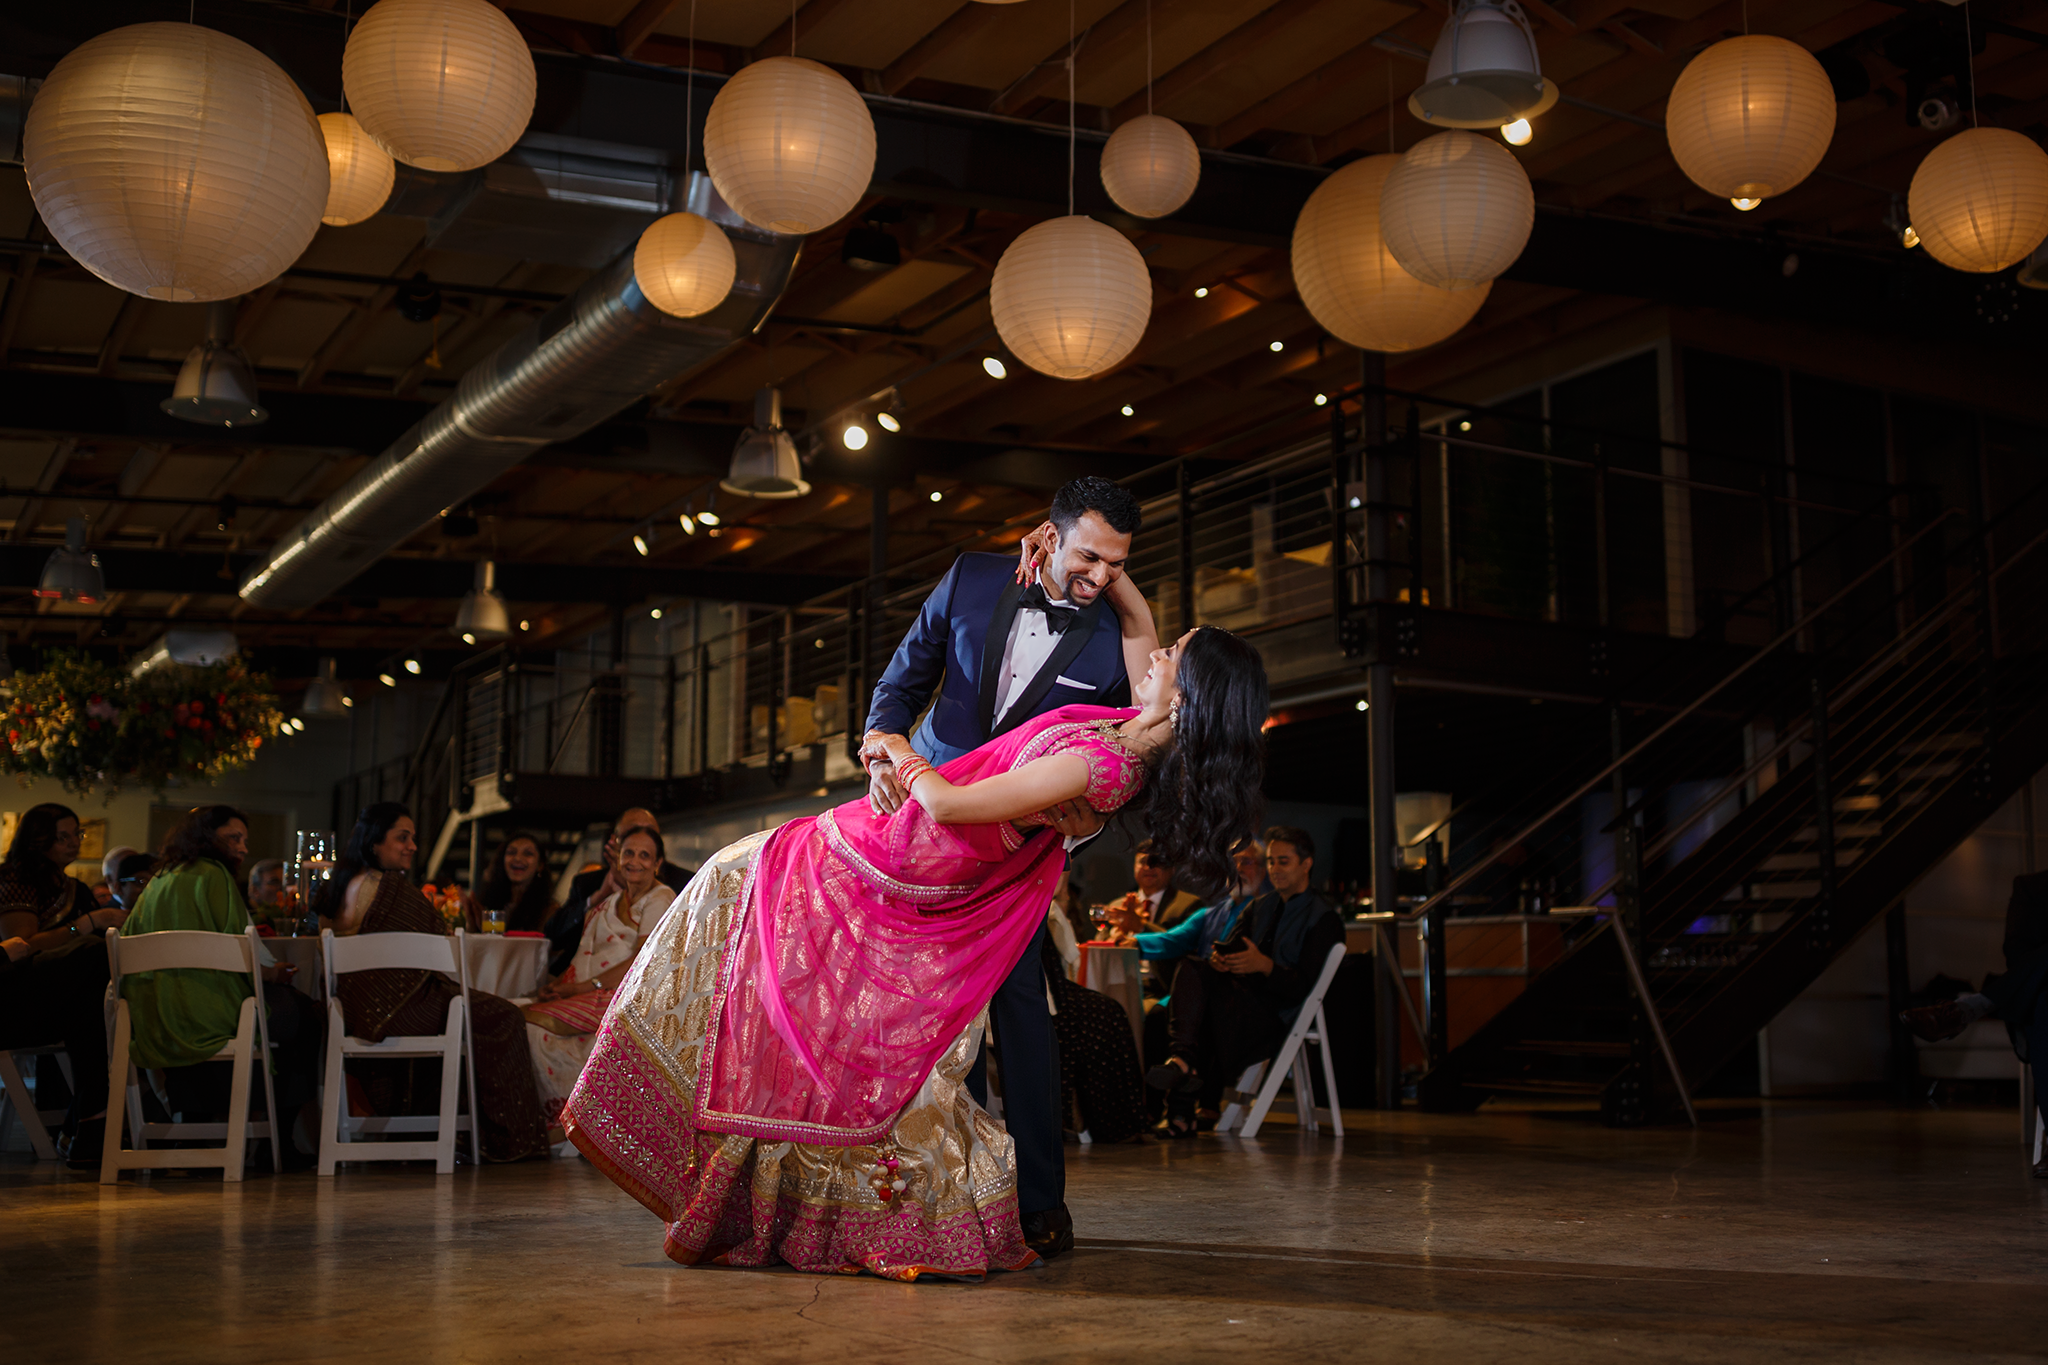 Atlanta_Georgia_Indian_wedding_photographer_Leah Eversley_photograhy_Greenville_SC_Zen.png